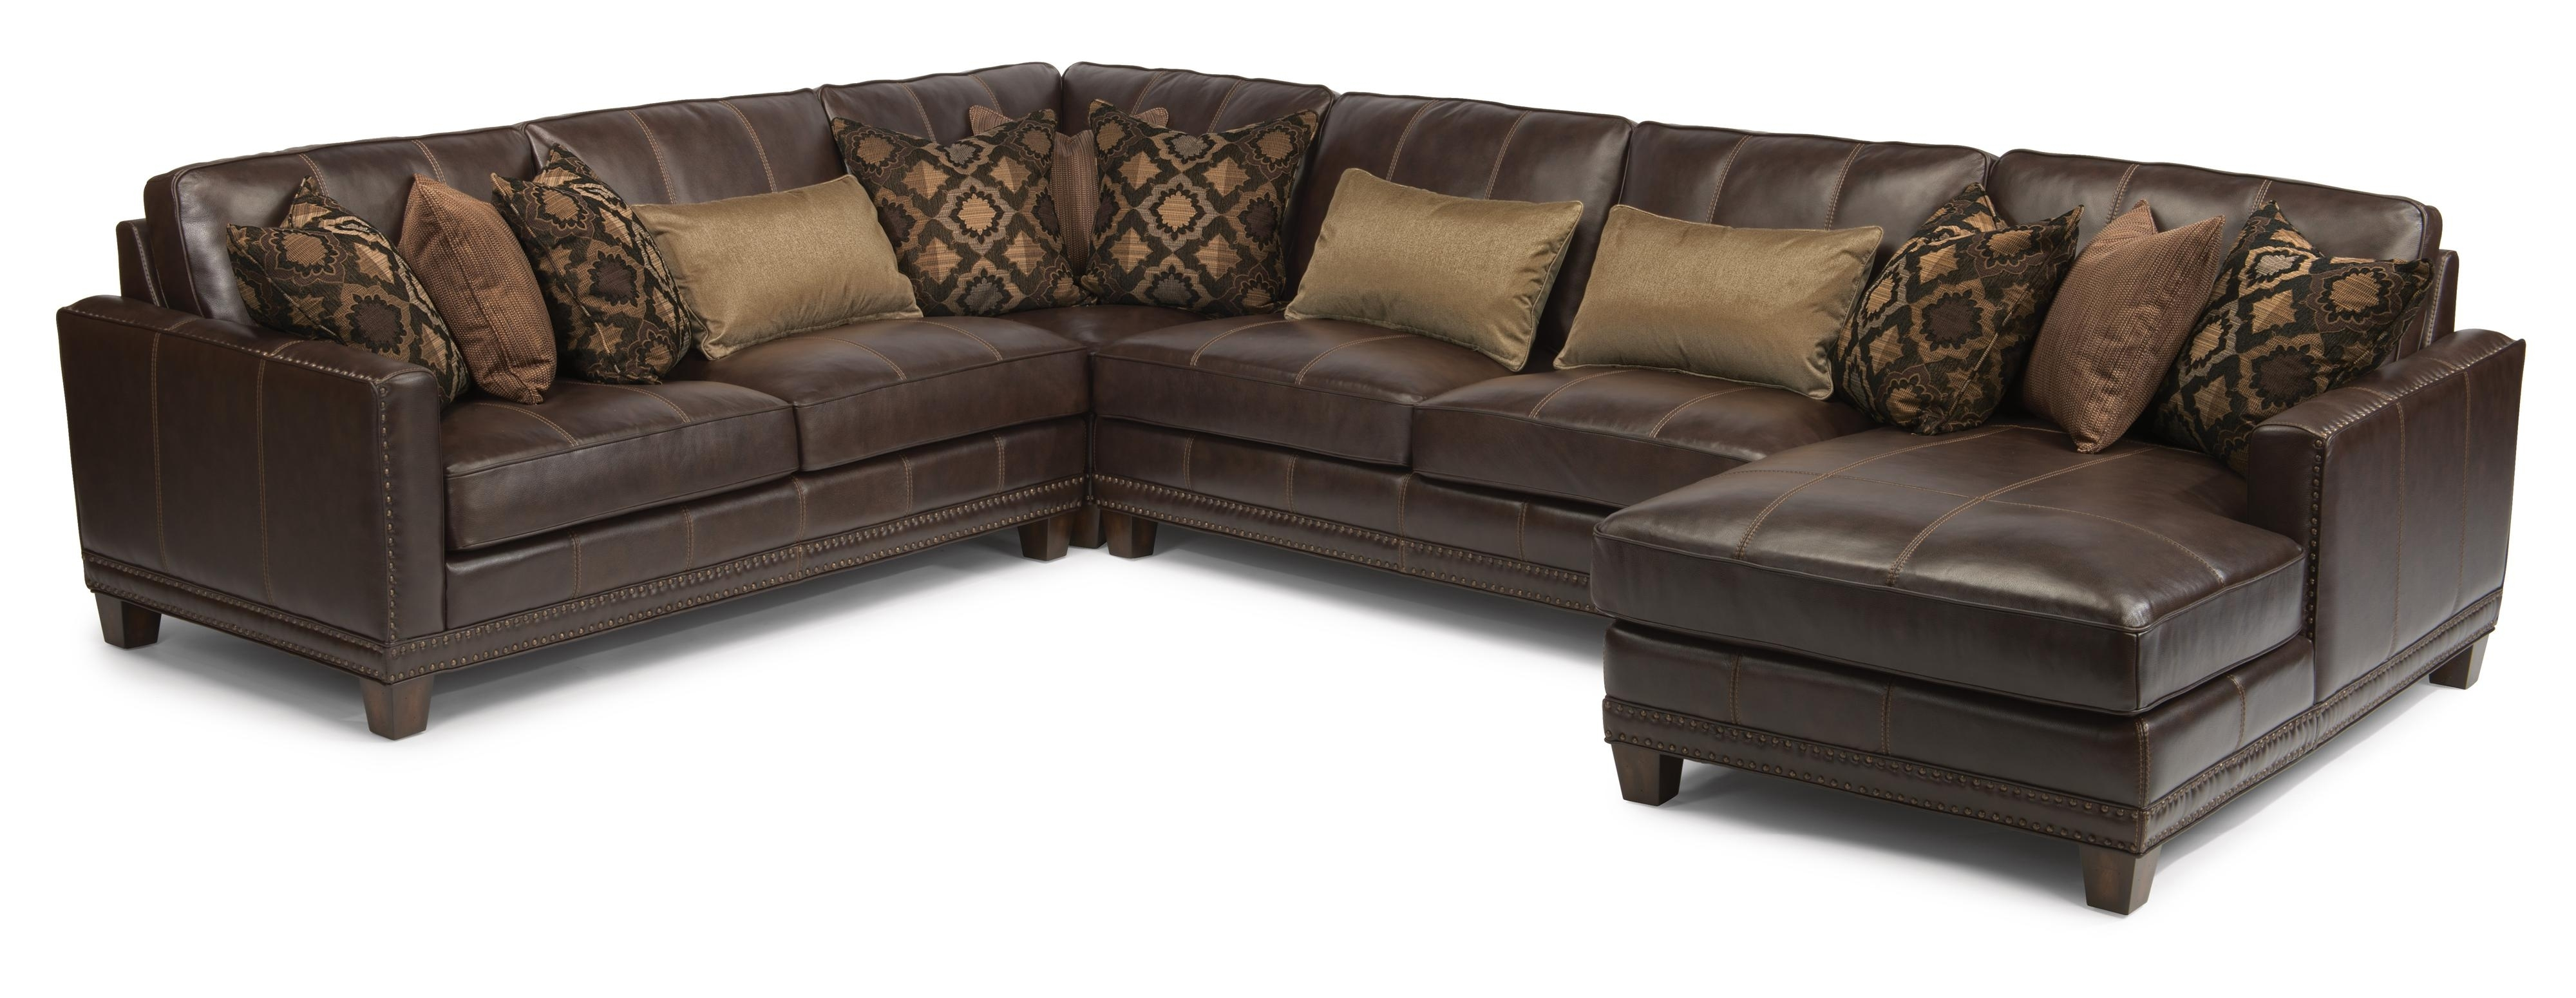 Flexsteel Latitudes – Port Royal Transitional Four Piece Sectional Pertaining To Meyer 3 Piece Sectionals With Raf Chaise (Image 10 of 25)